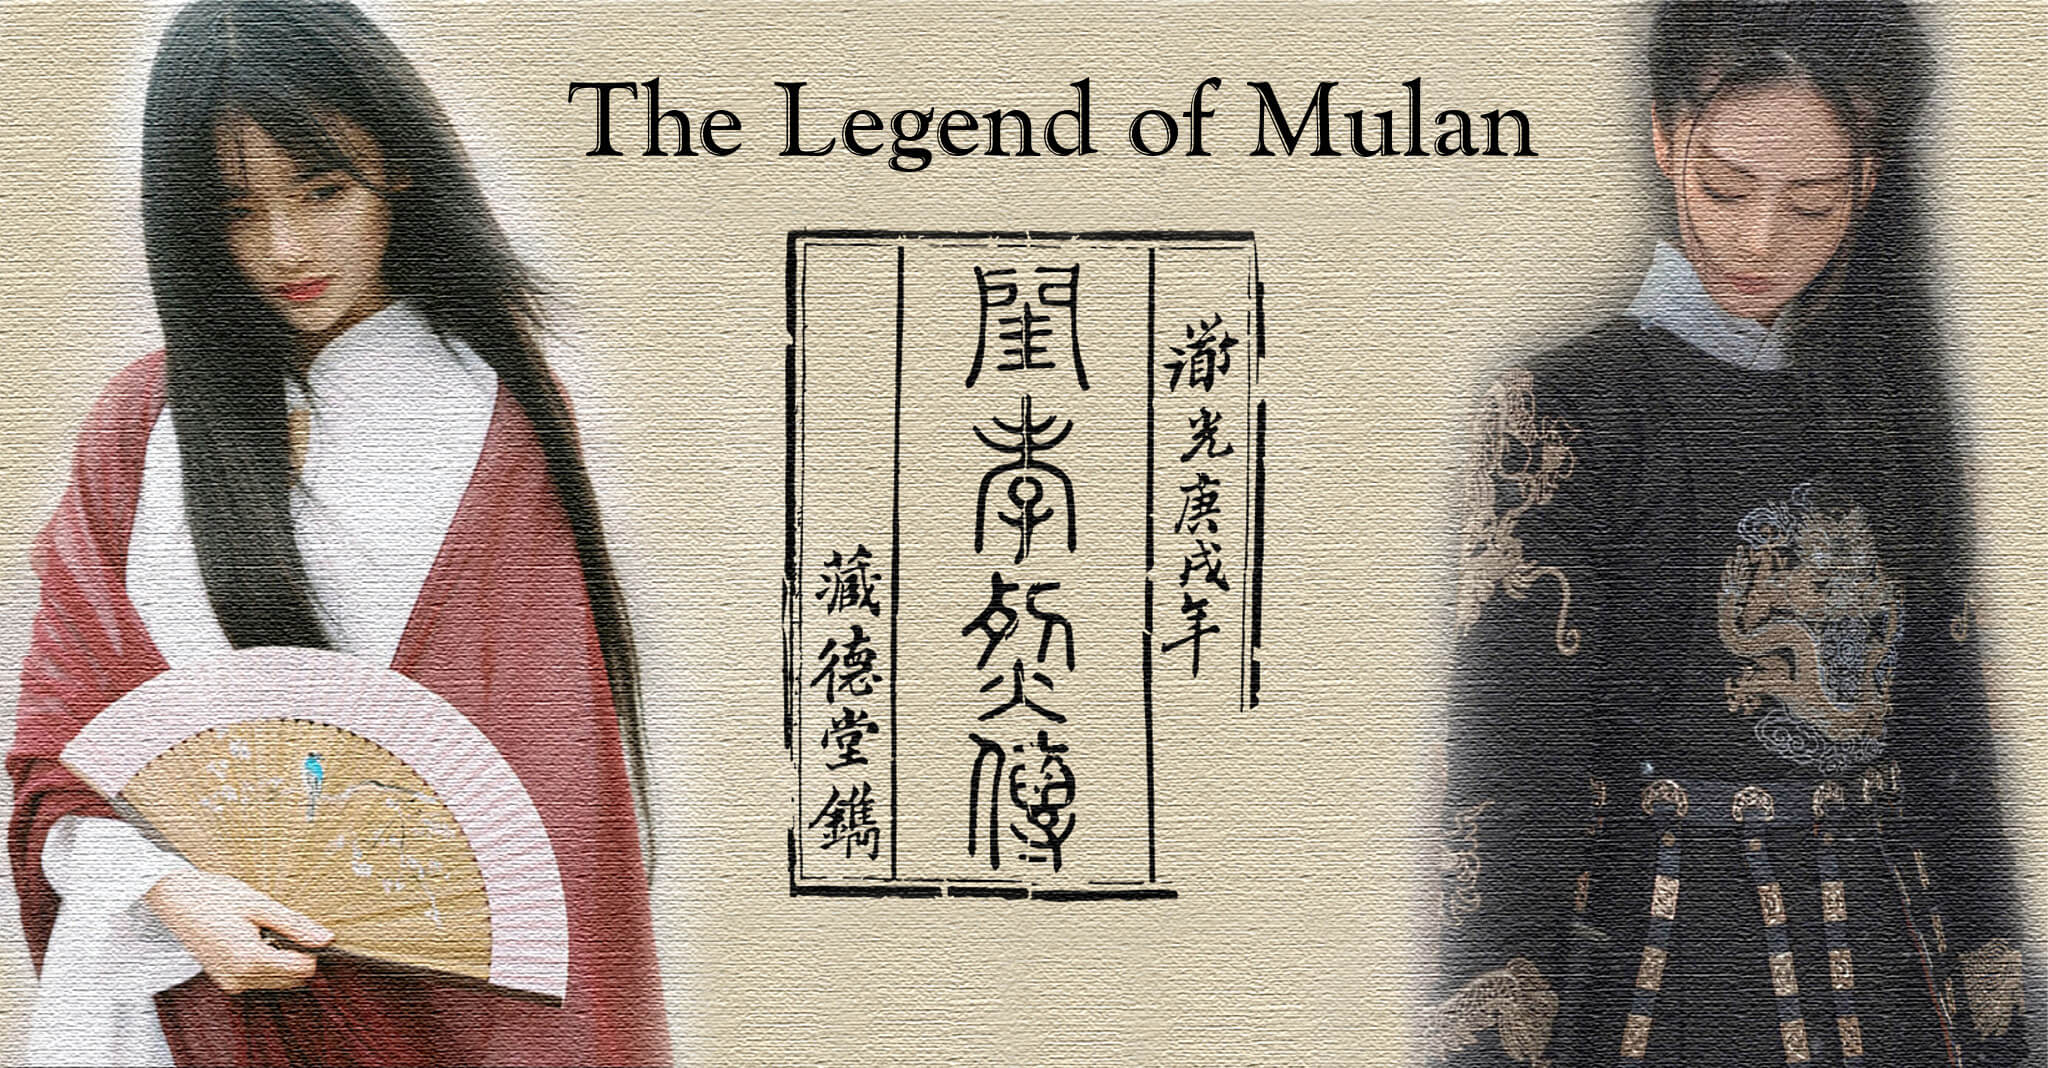 Two modern depictions of Mulan stand in opposition to the title page of the Qing dynasty novel Fierce and Filial. Artwork by Stella Su.